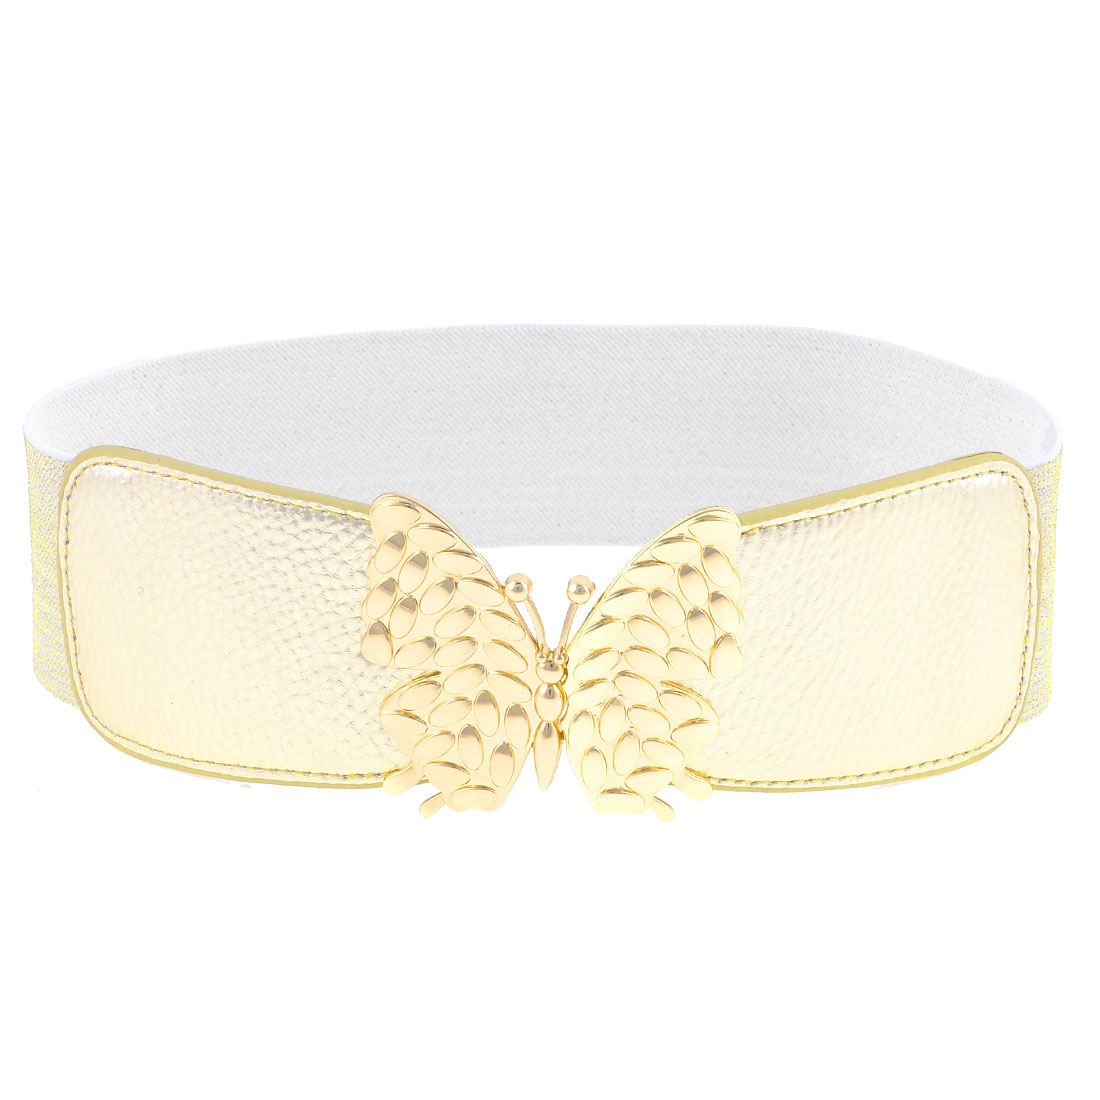 Faux Leather Front Butterfly Interlock Buckle Stretchy Waist Belt Gold Tone